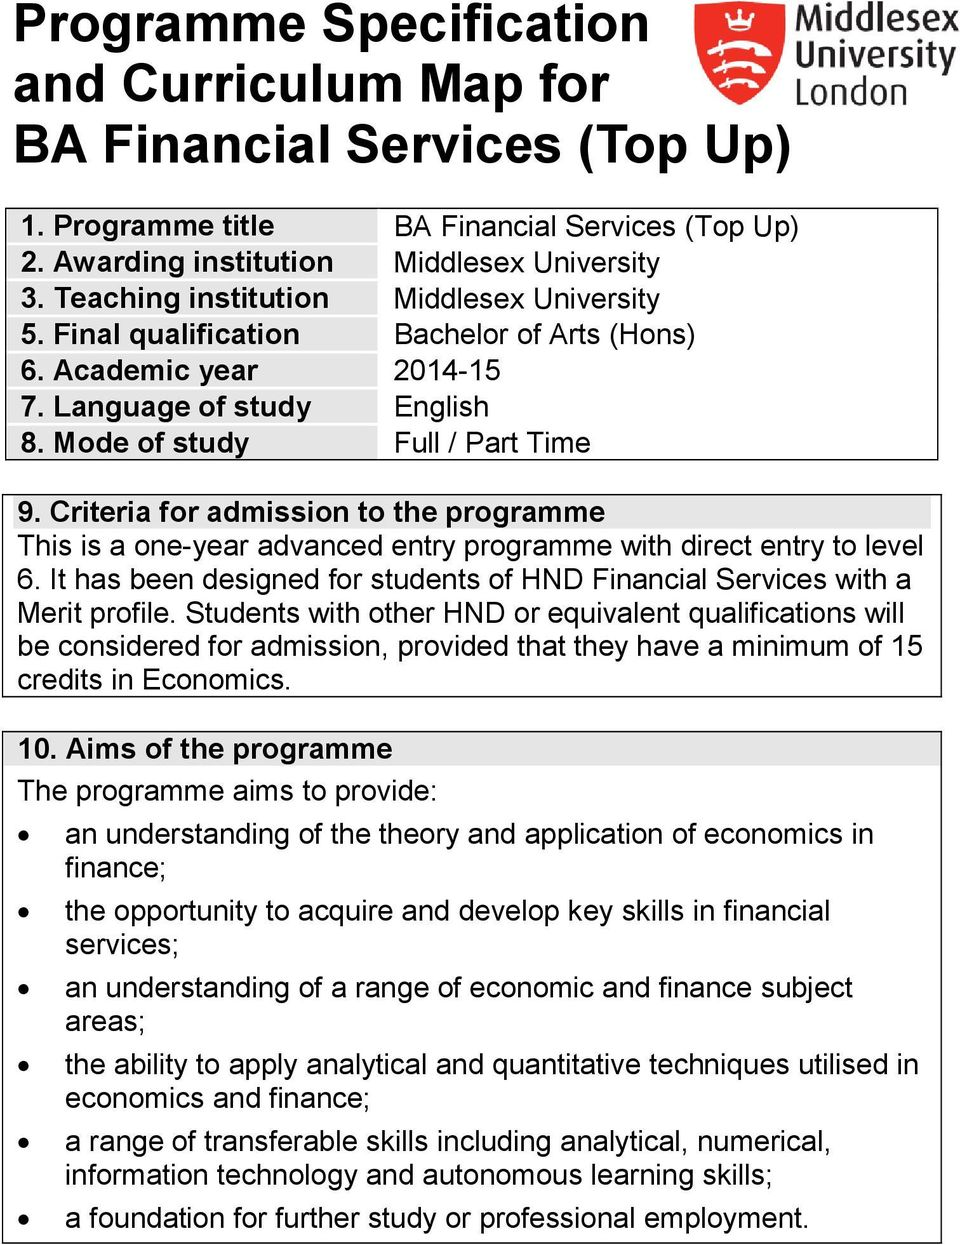 Criteria for admission to the programme This is a one-year advanced entry programme with direct entry to level 6. It has been designed for students of HND Financial Services with a Merit profile.